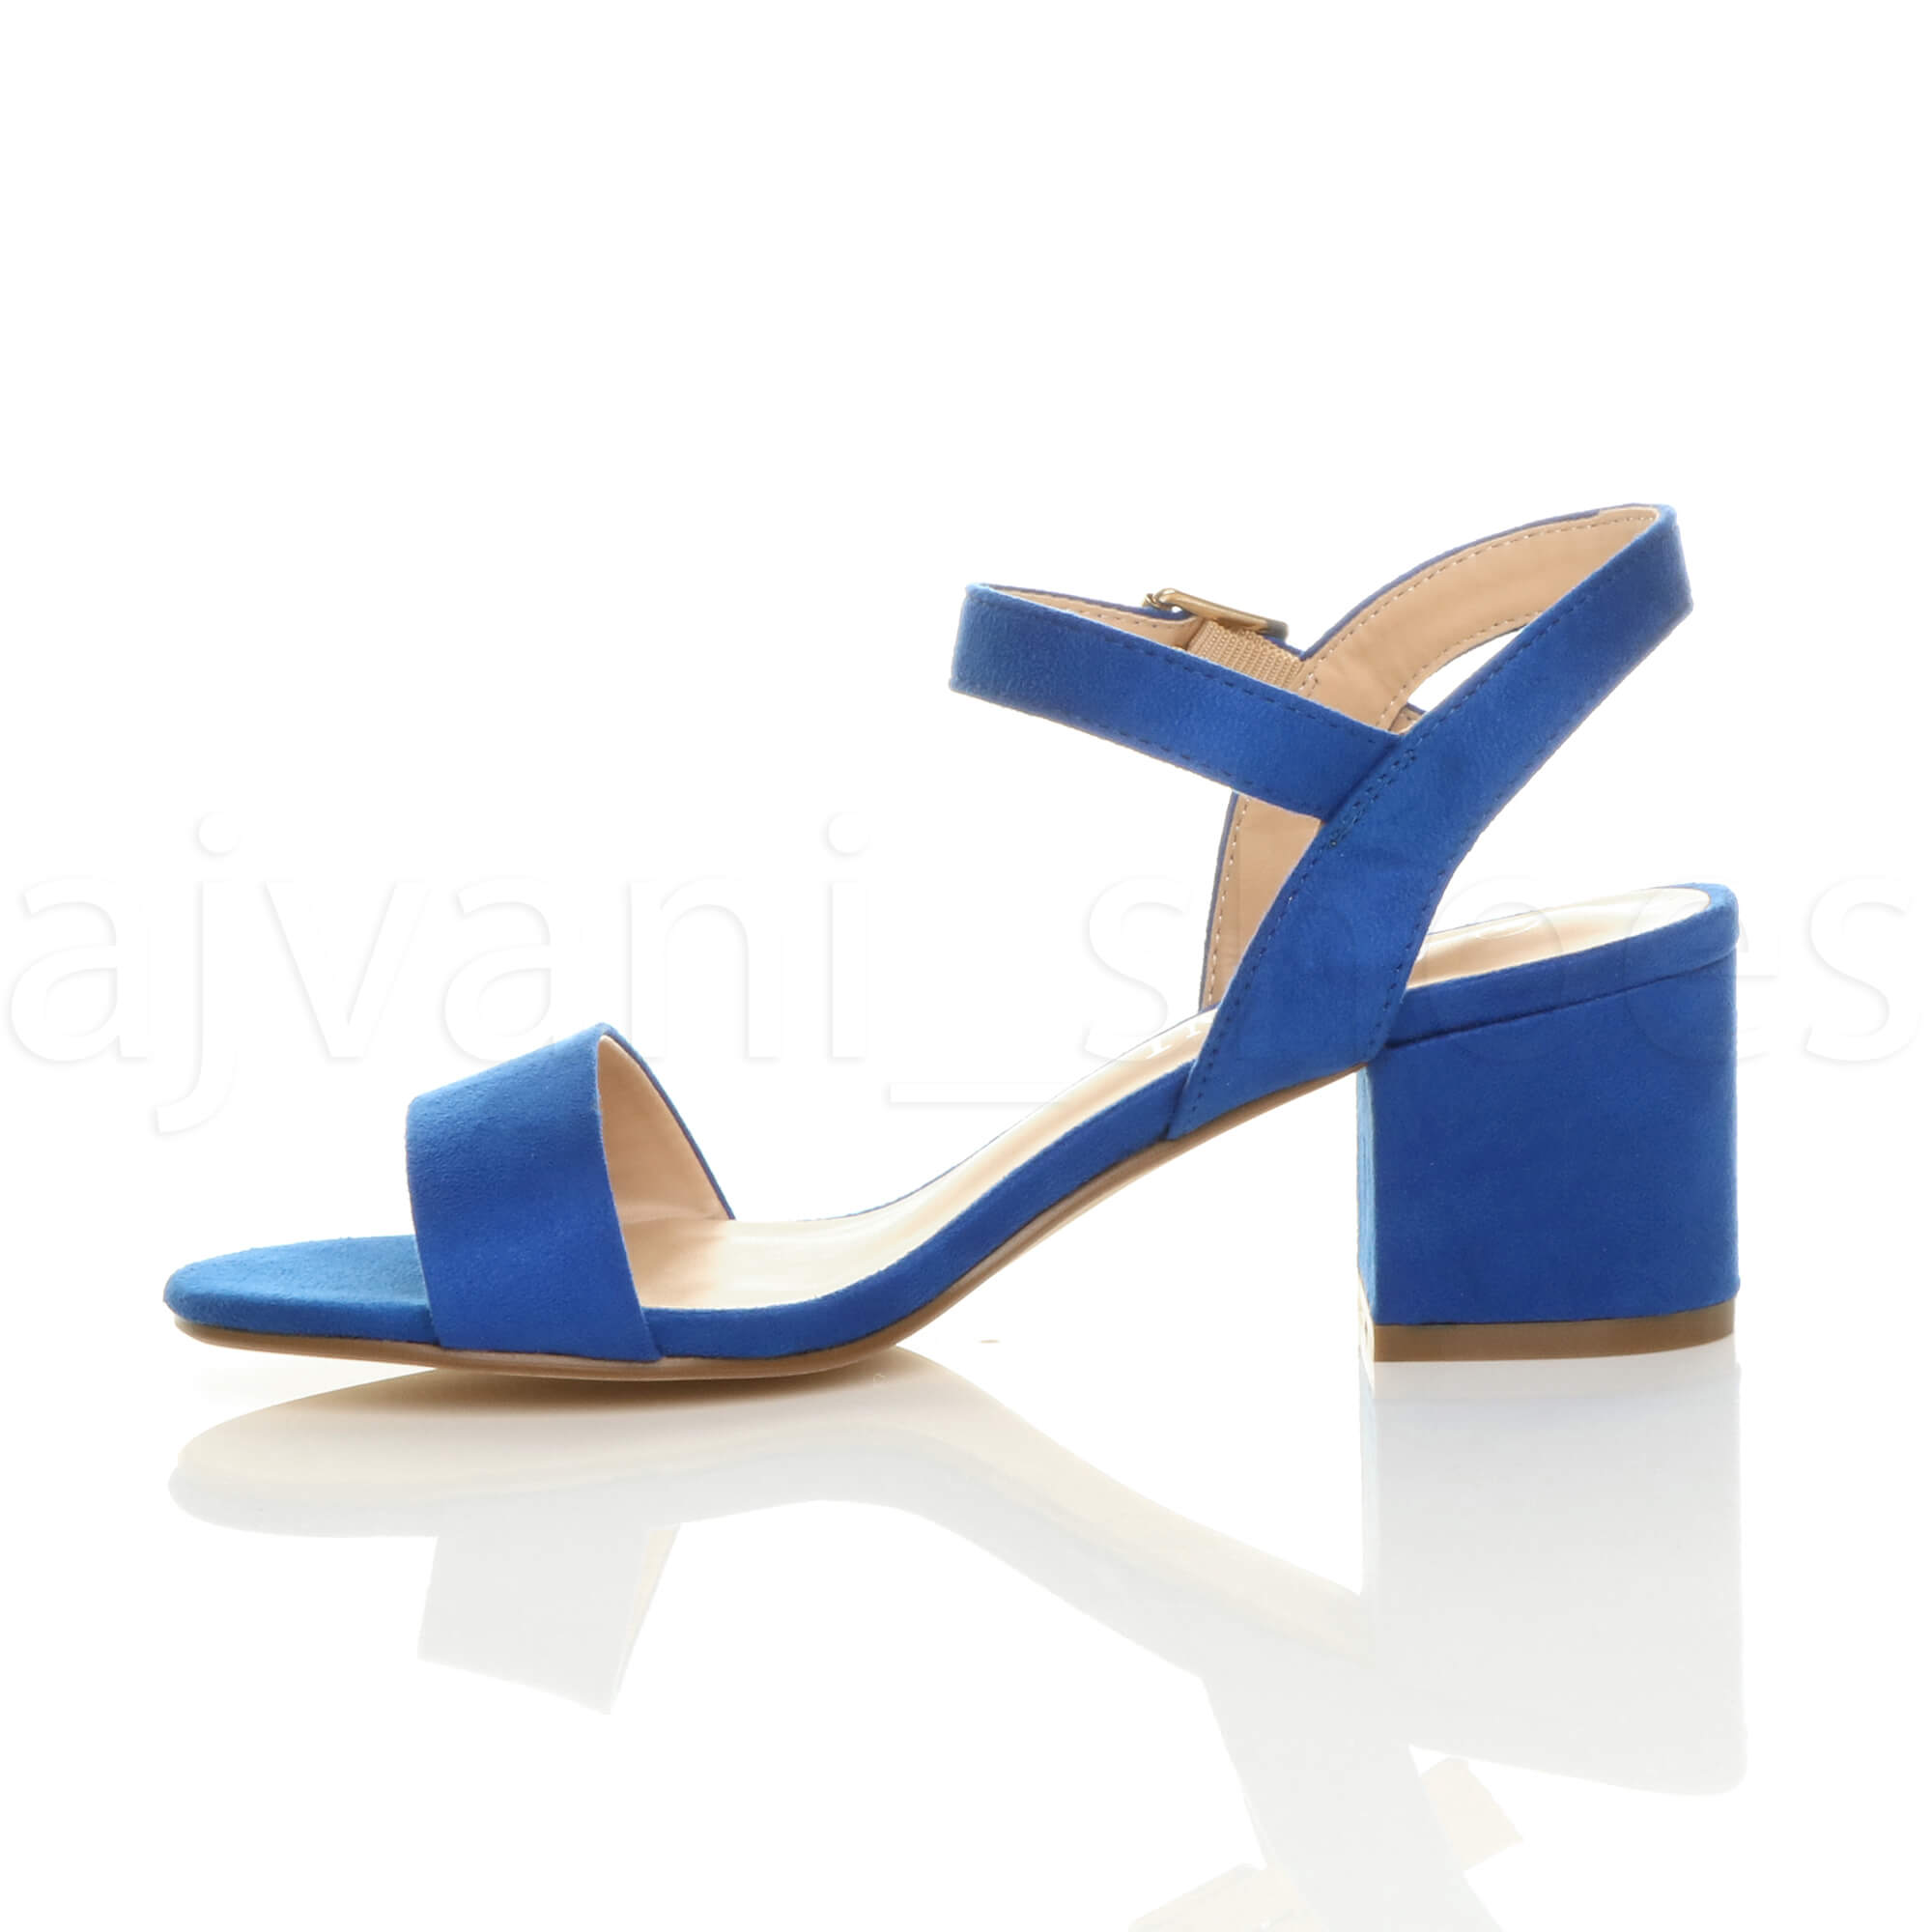 WOMENS-LADIES-MID-LOW-BLOCK-HEEL-PEEP-TOE-ANKLE-STRAP-STRAPPY-PARTY-SANDALS-SIZE thumbnail 36